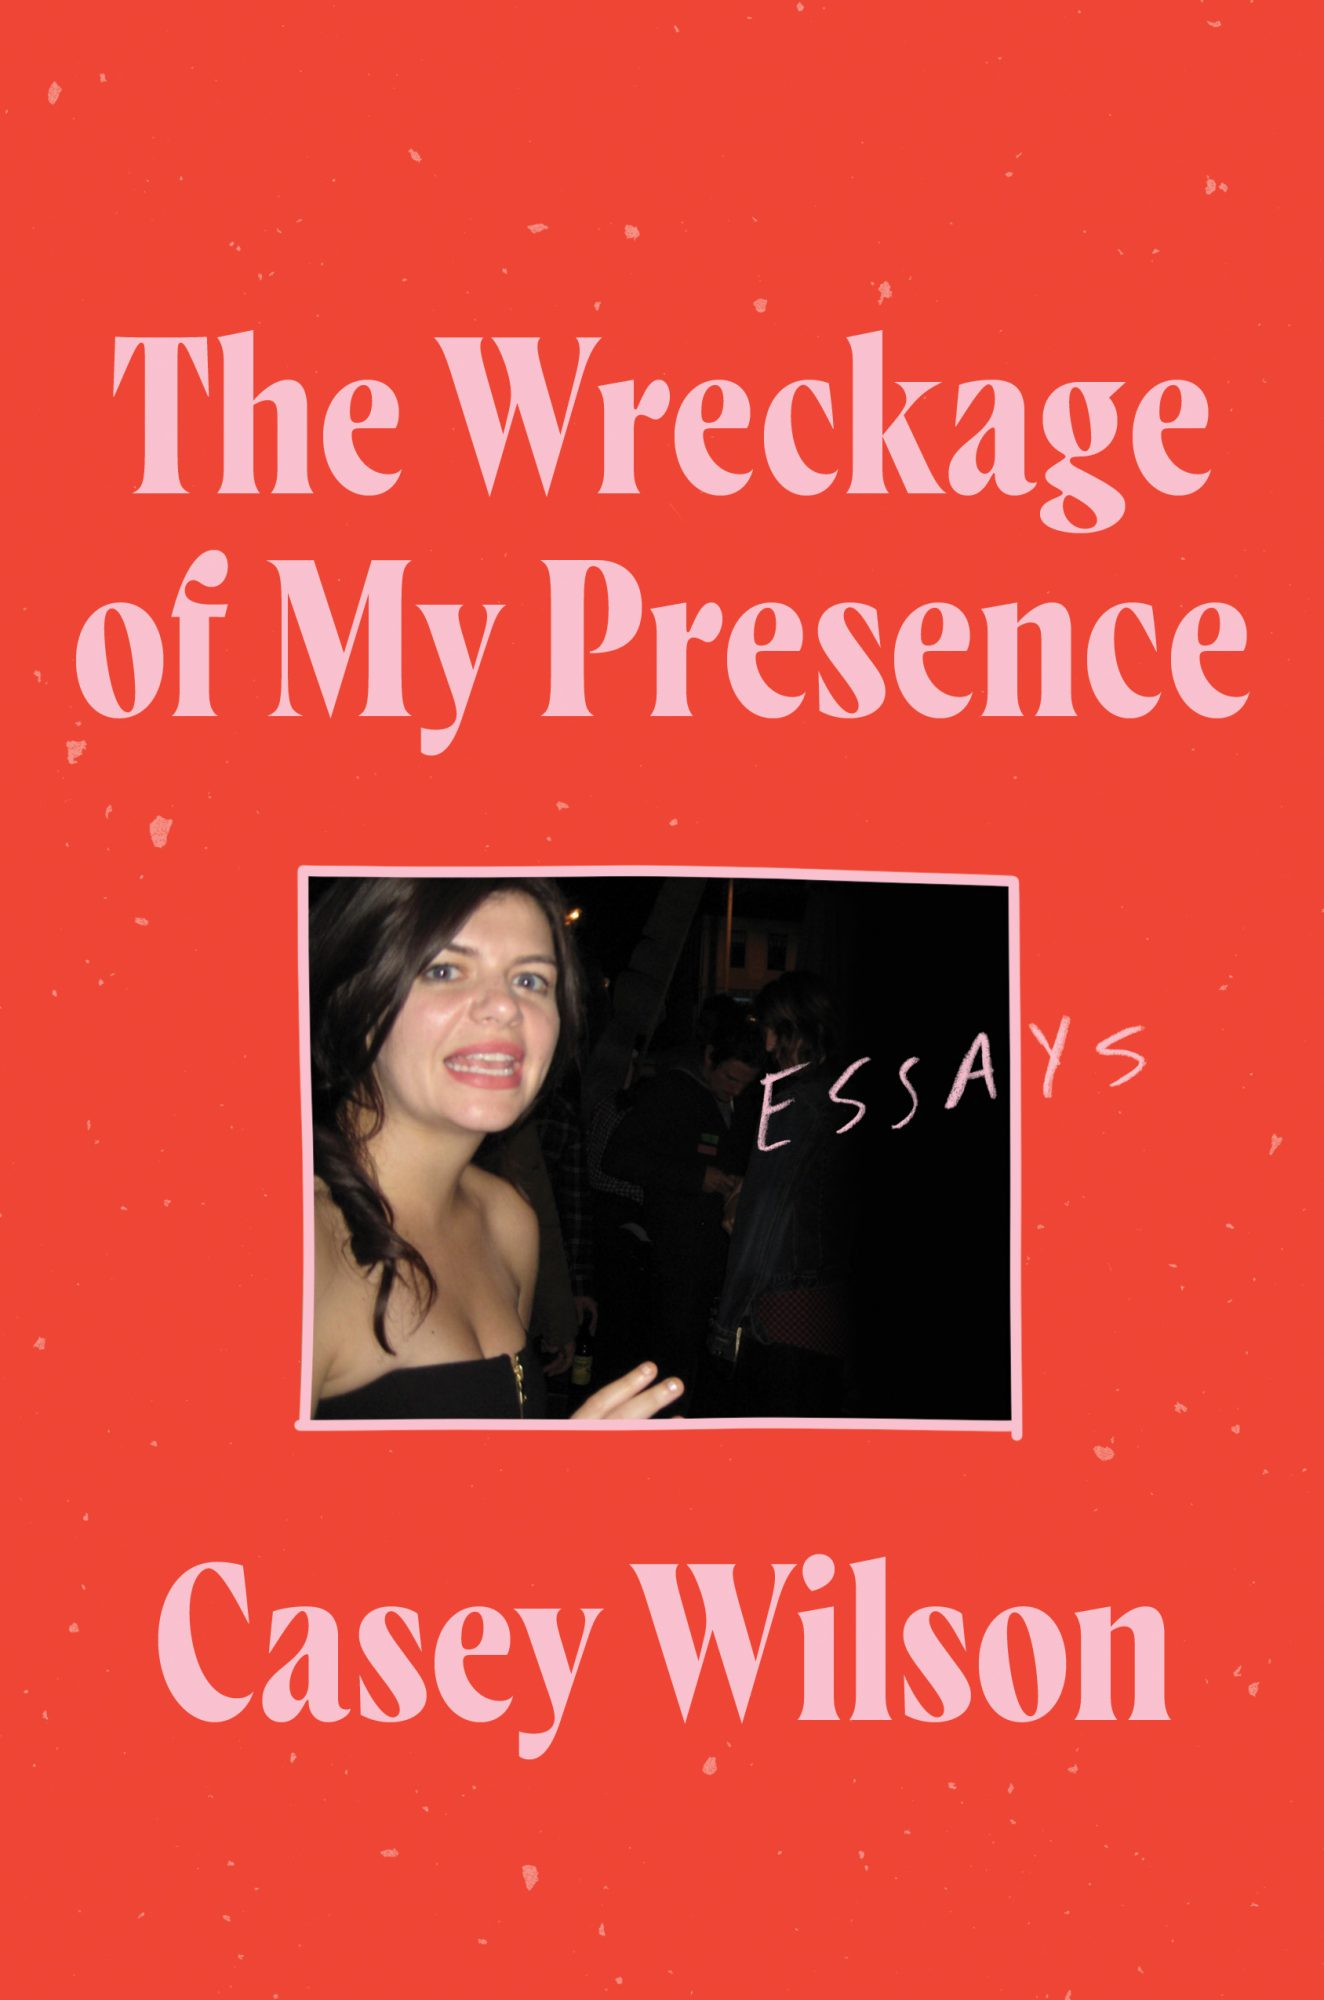 The Wreckage of My Presence, by Casey Wilson